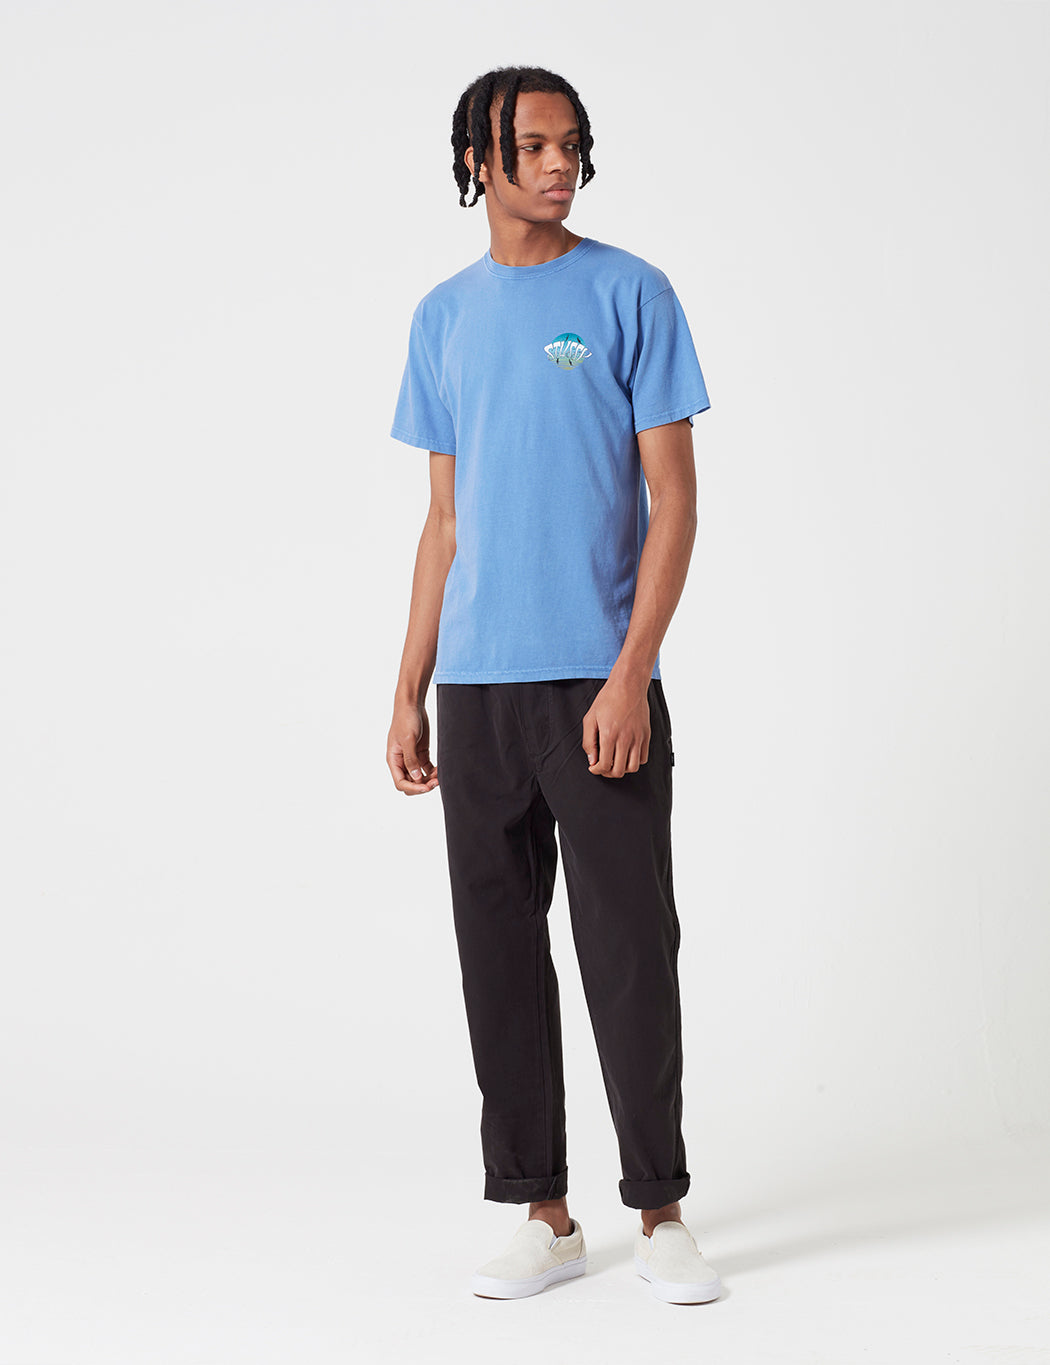 Stussy LSD Sunset Pigment Dyed T-Shirt - Blue